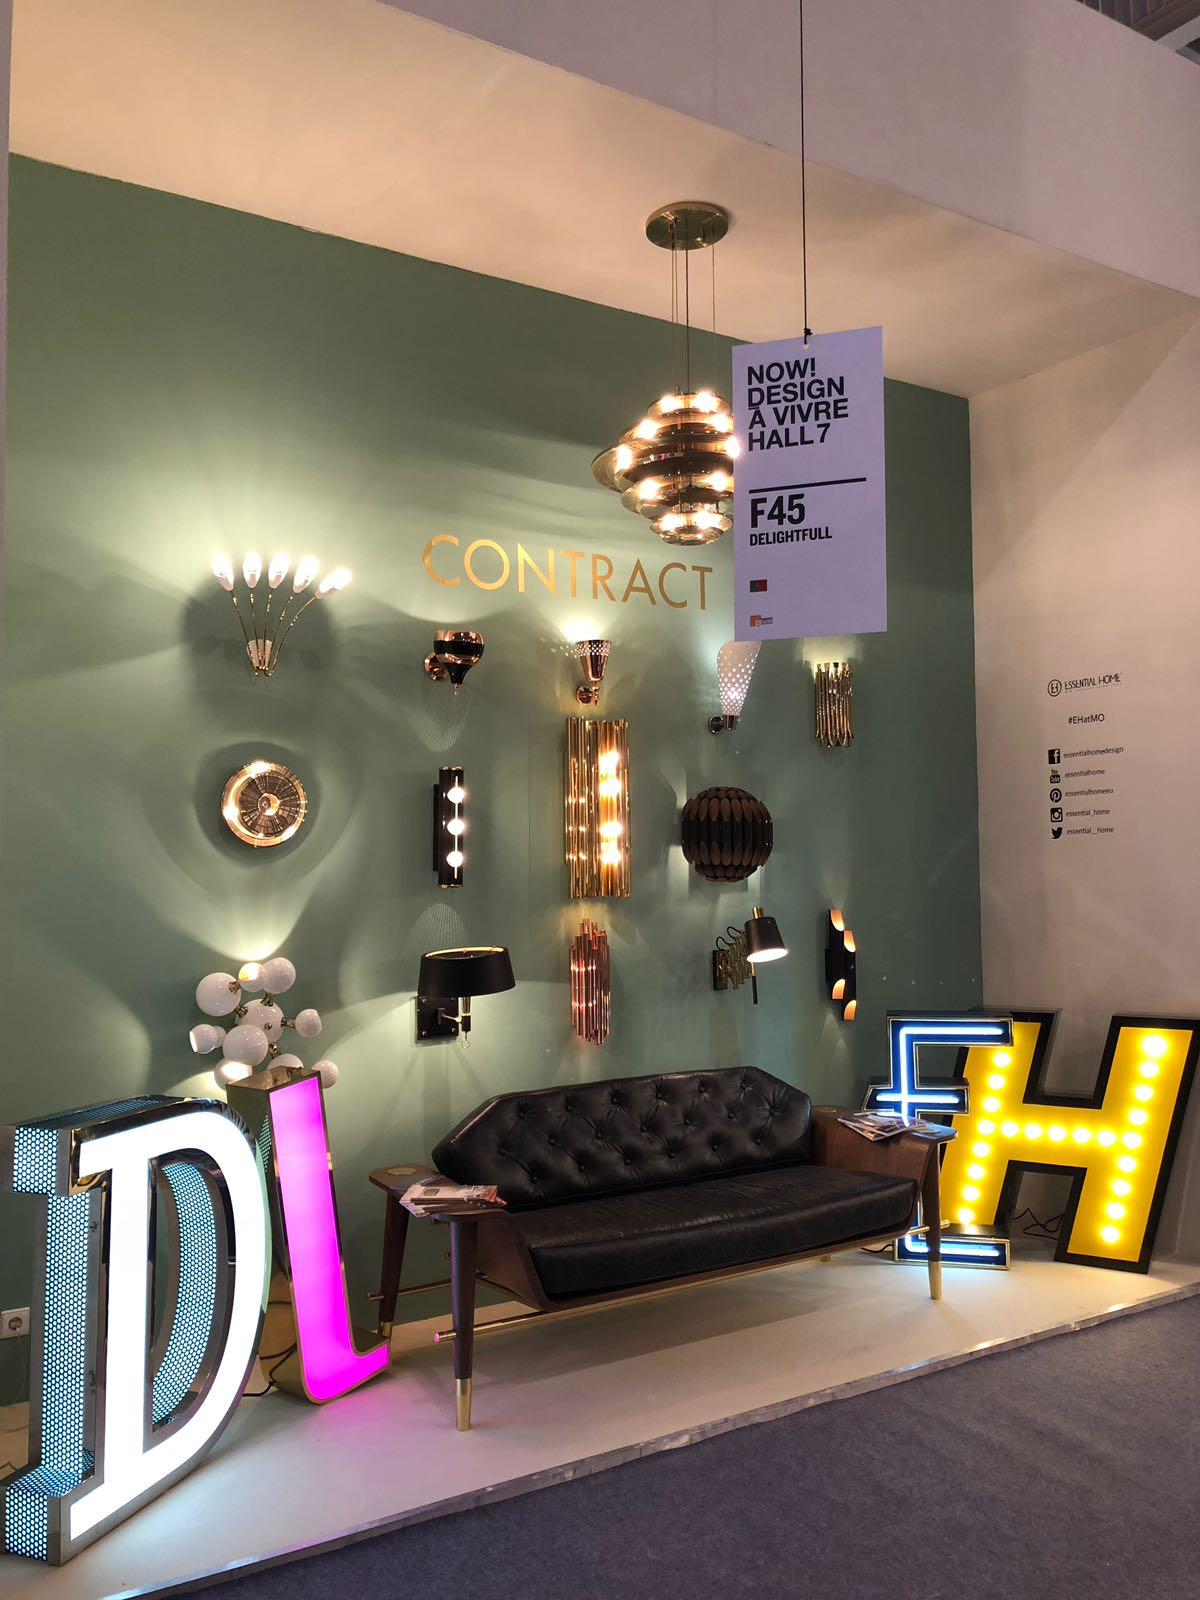 Maison et Objet 2018 The Pieces You Need To Have A Look At 5 Maison et objet 2018 Maison et Objet 2018: The Pieces You Need To Have A Look At Maison et Objet 2018 The Pieces You Need To Have A Look At 5